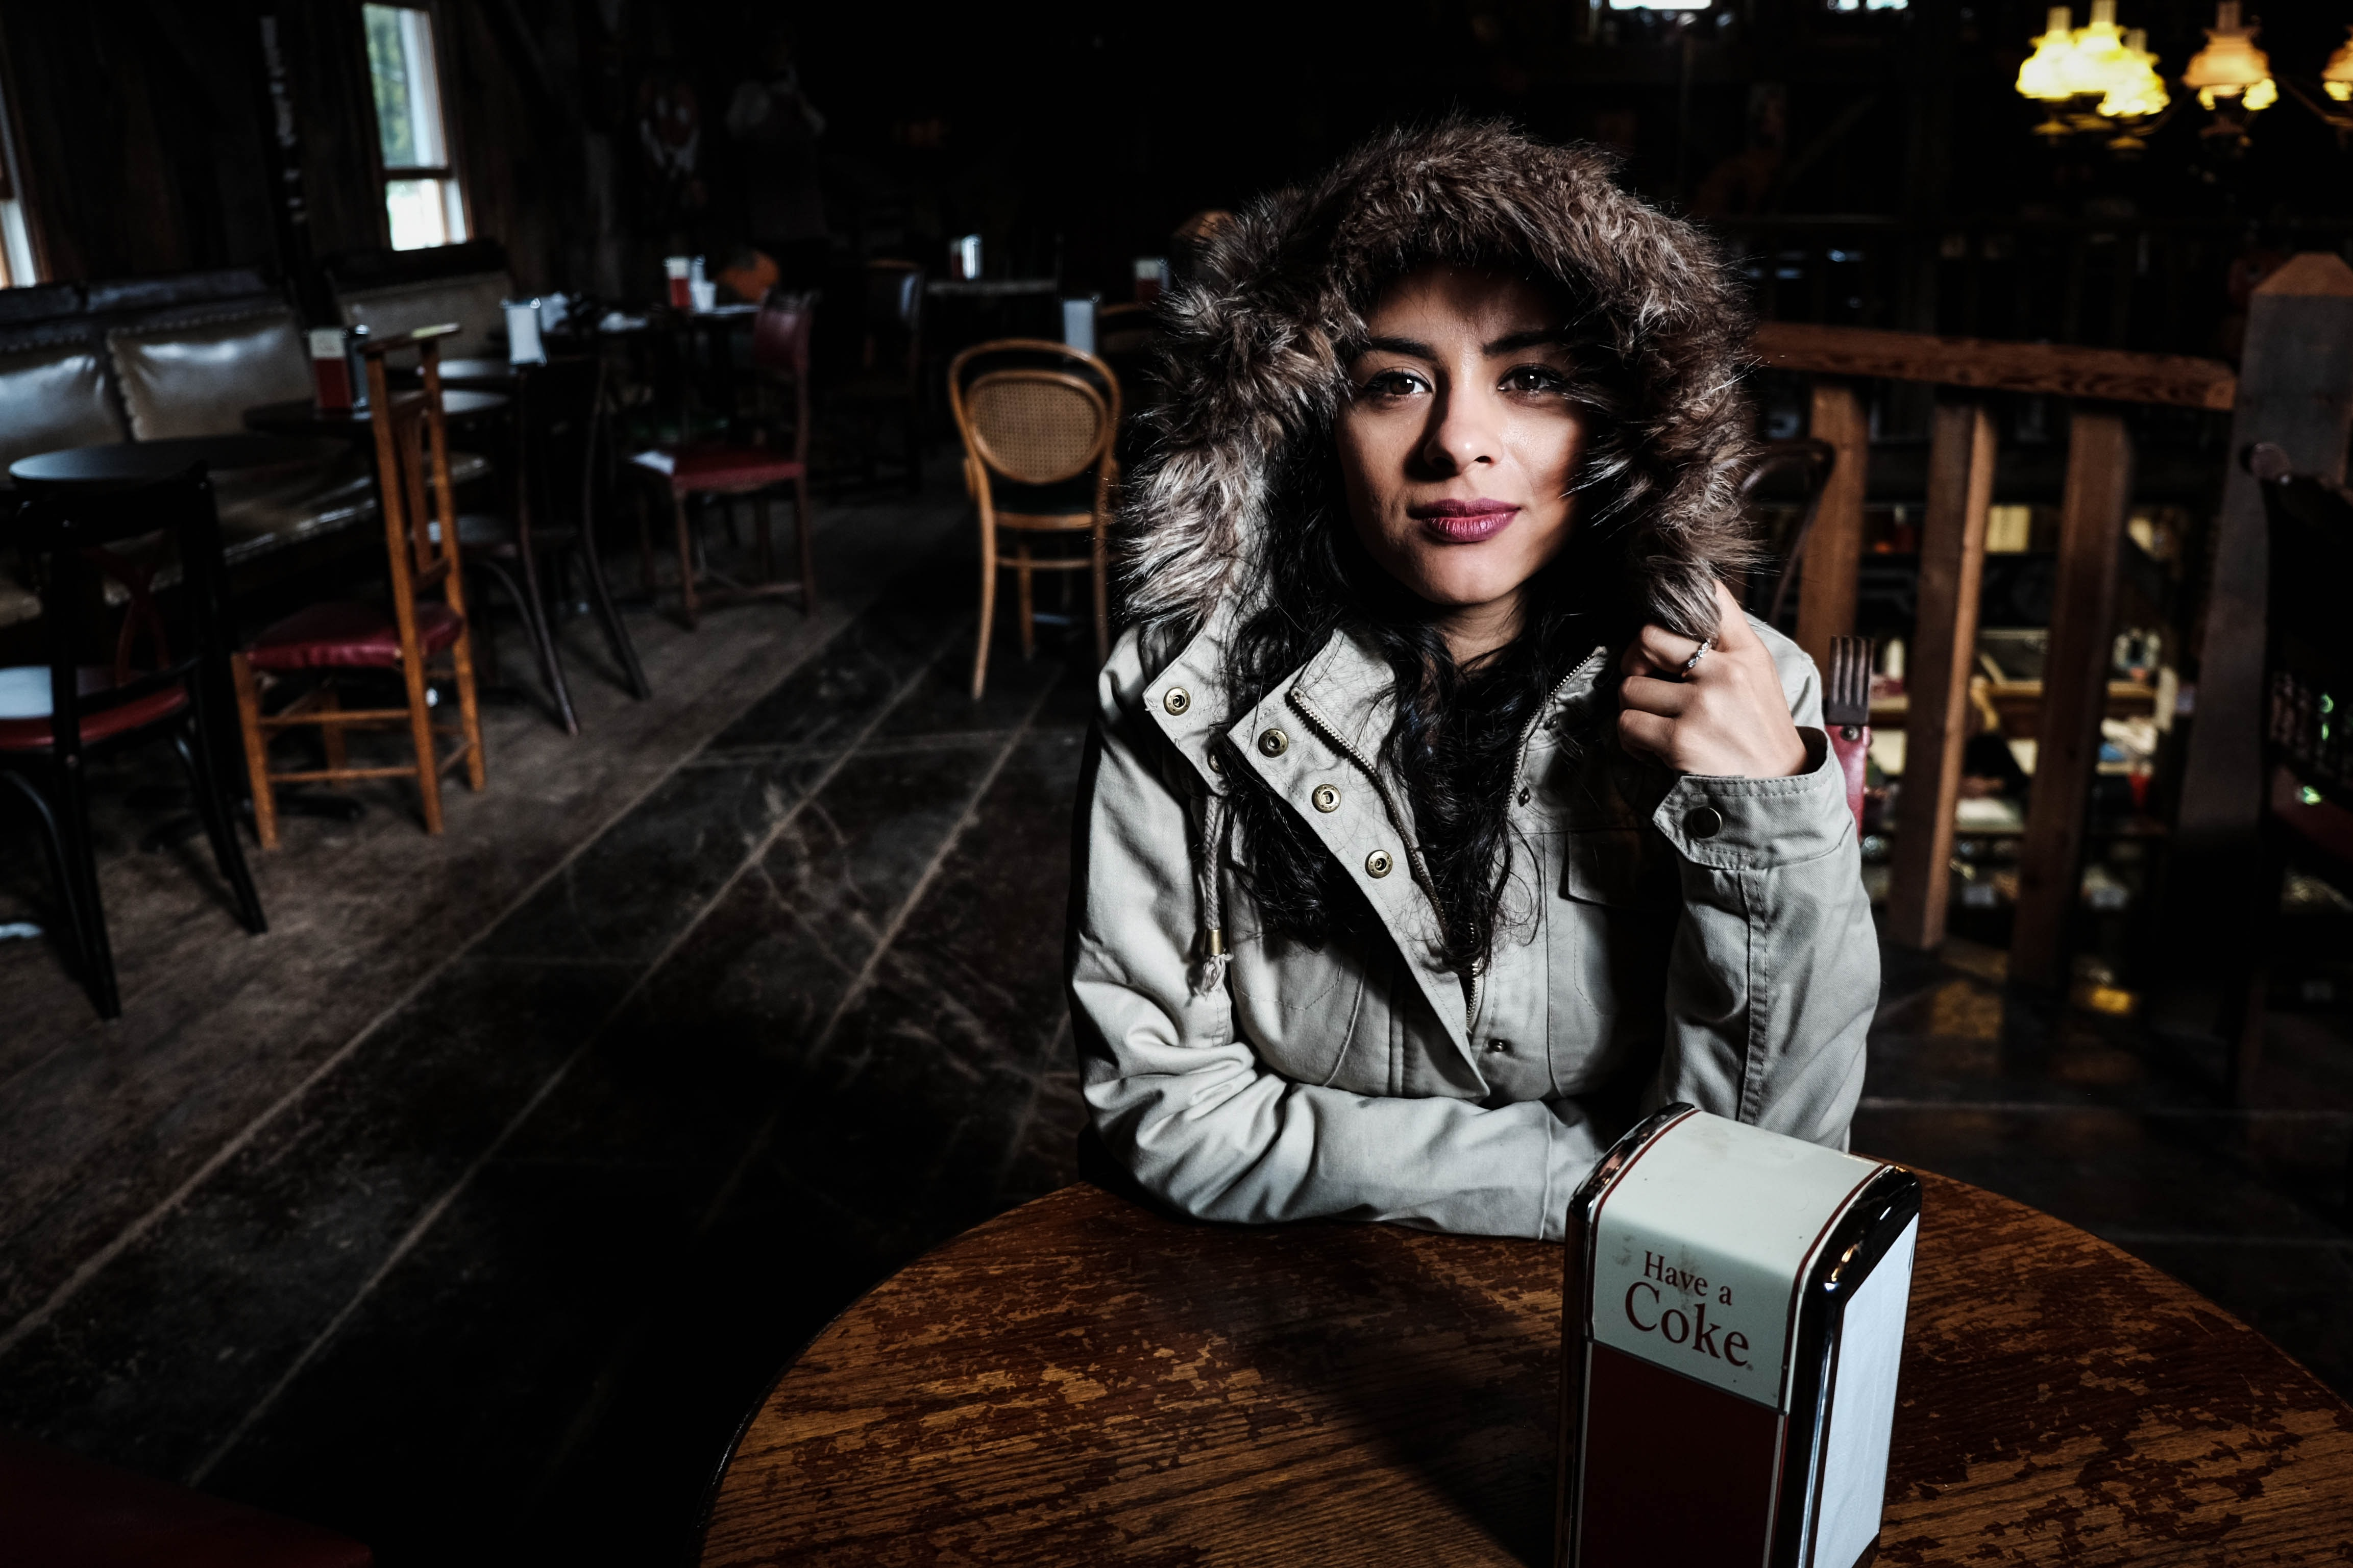 A woman in a fur-lined coat sits in a table at a dark and empty restaurant